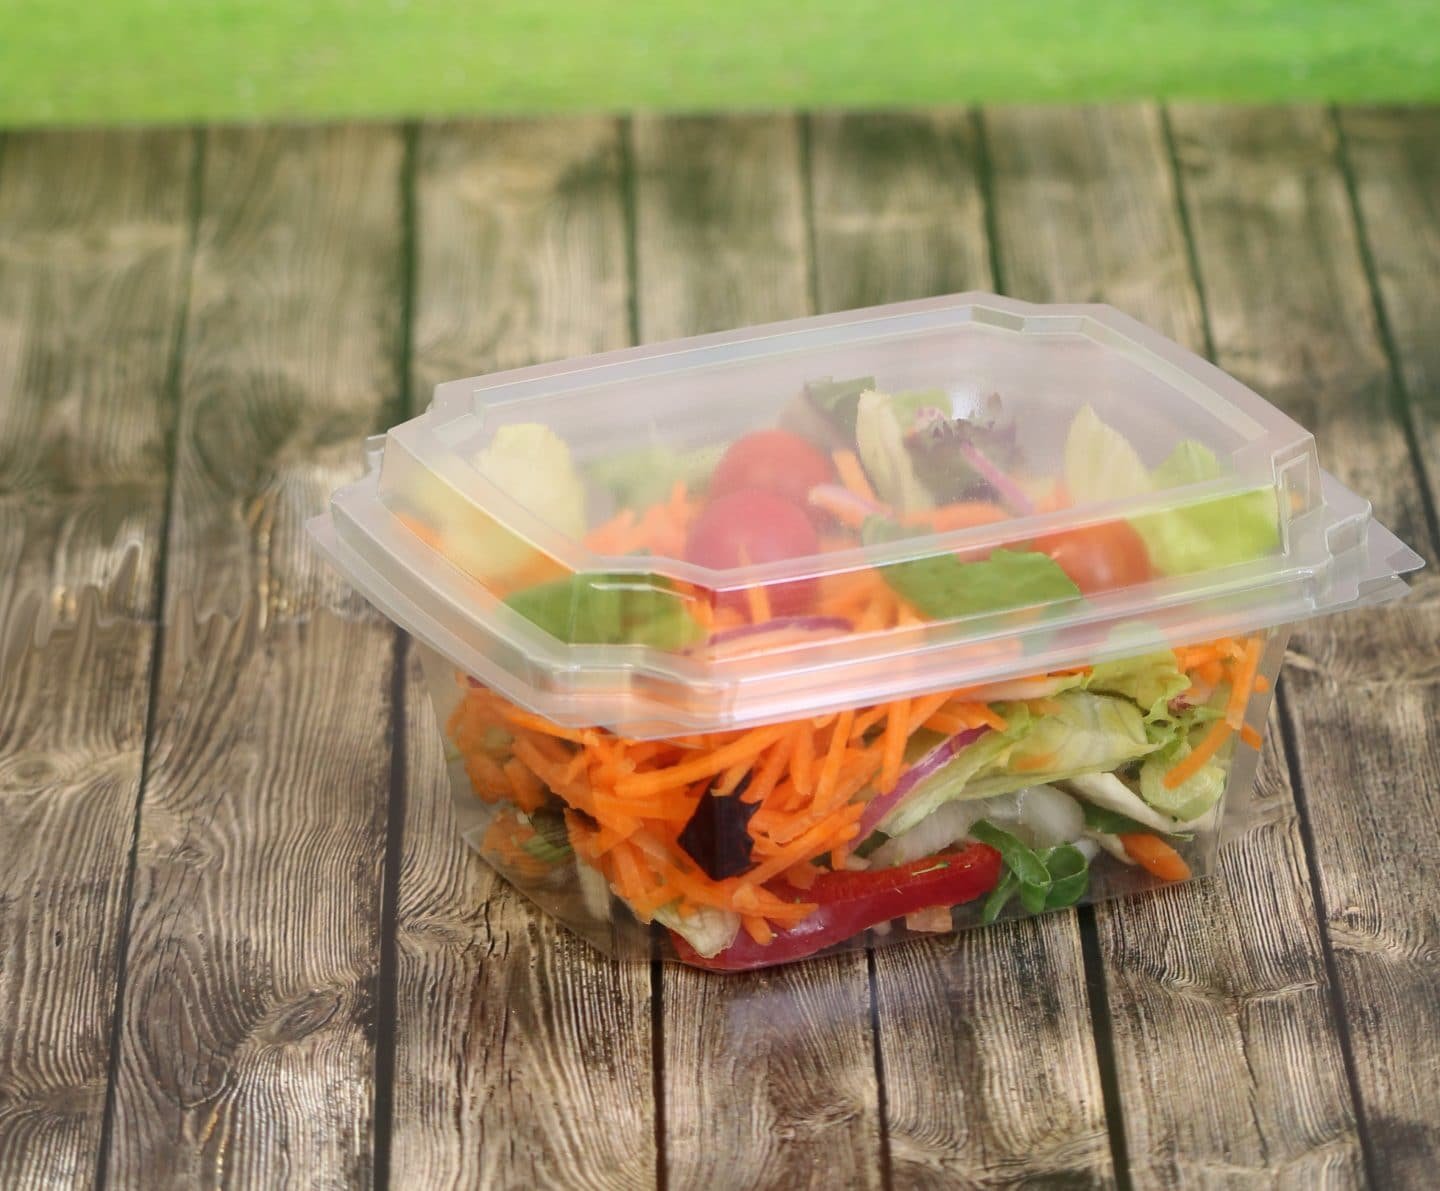 Bunzl Catering Supplies launches 100% recycled salad container